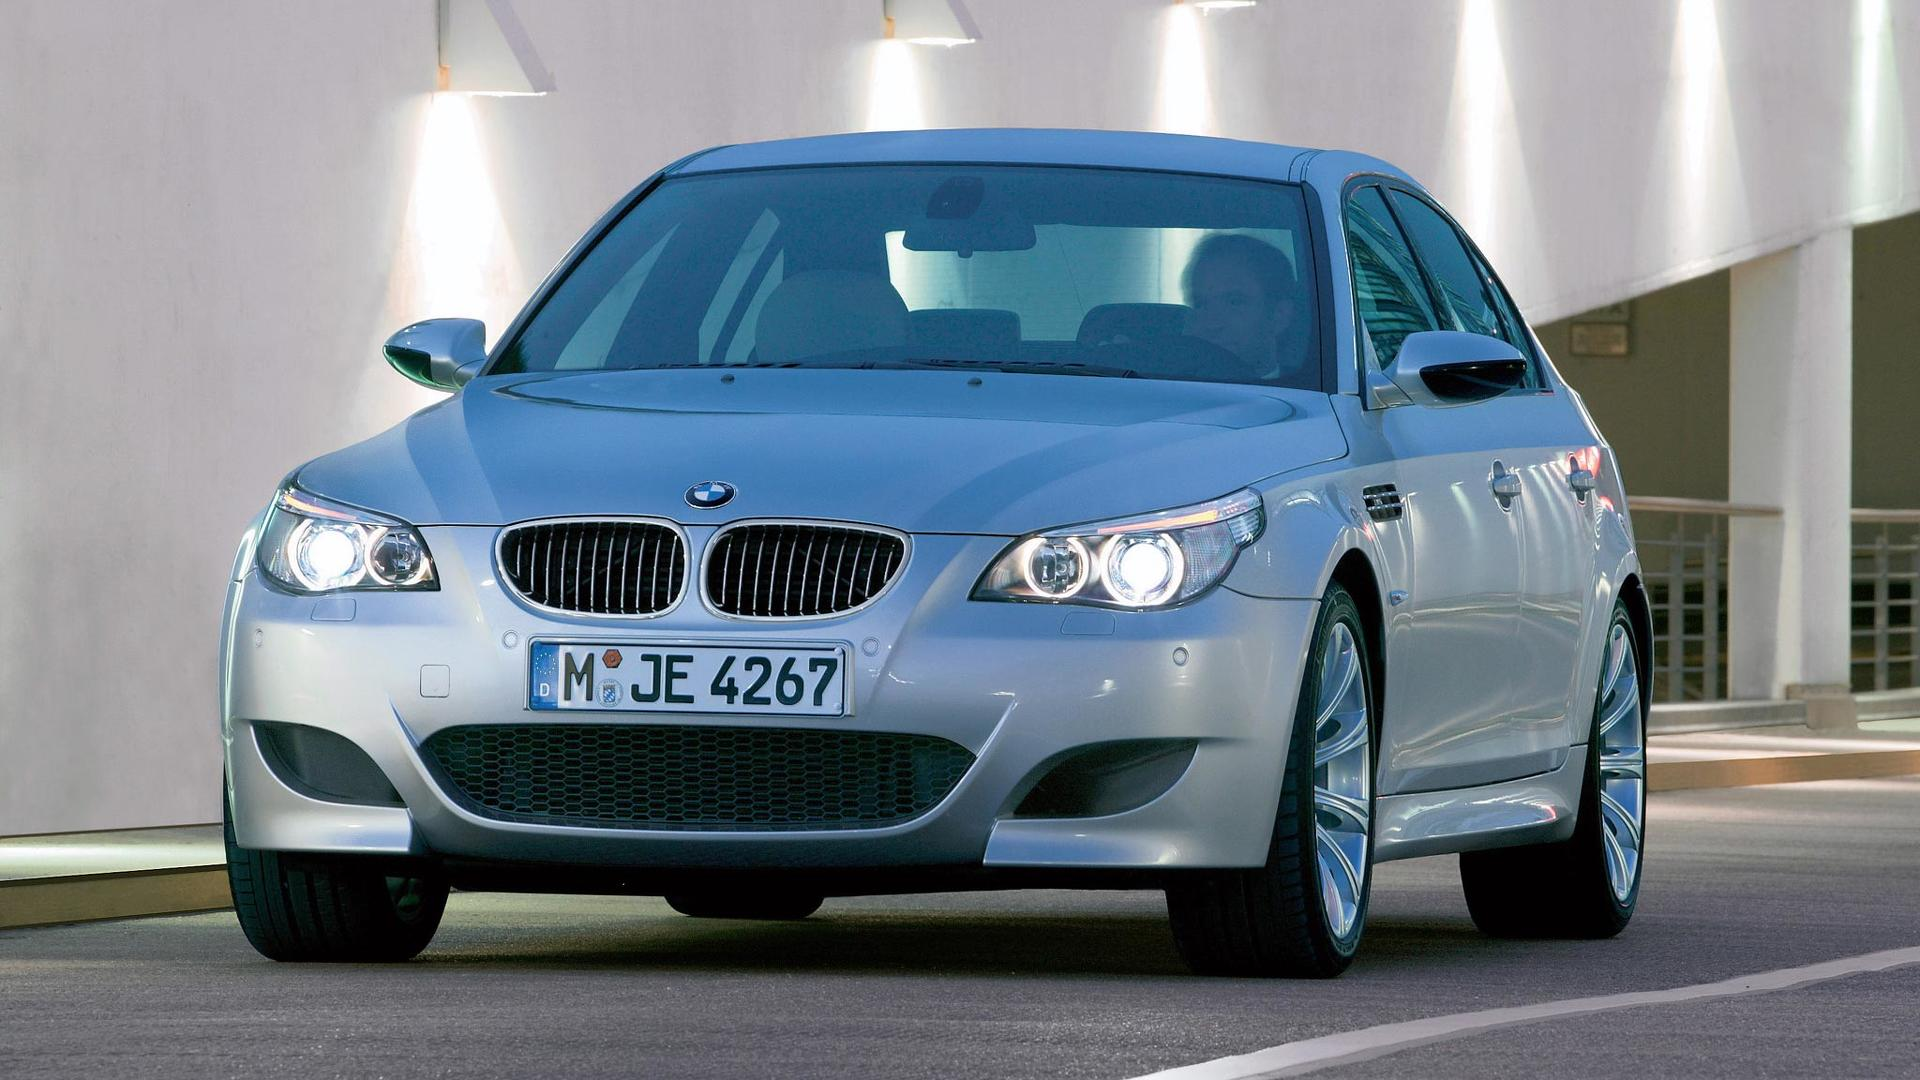 Bmw E60 M5 Faces Newer M140i 840d In A Drag Race